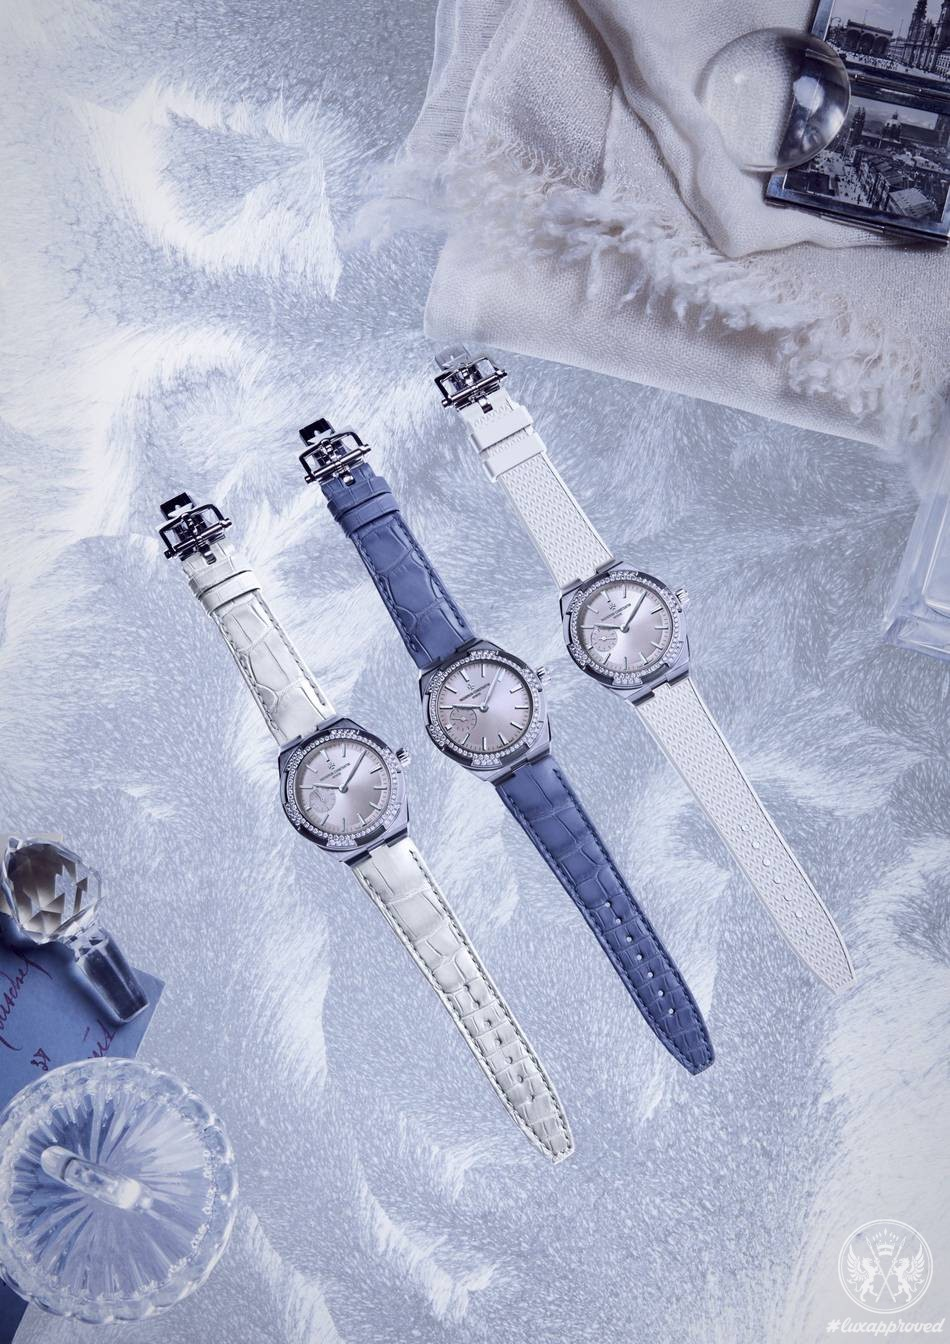 Vacheron Constantin Overseas Collection Is Refined with Stylish Straps and Bracelets